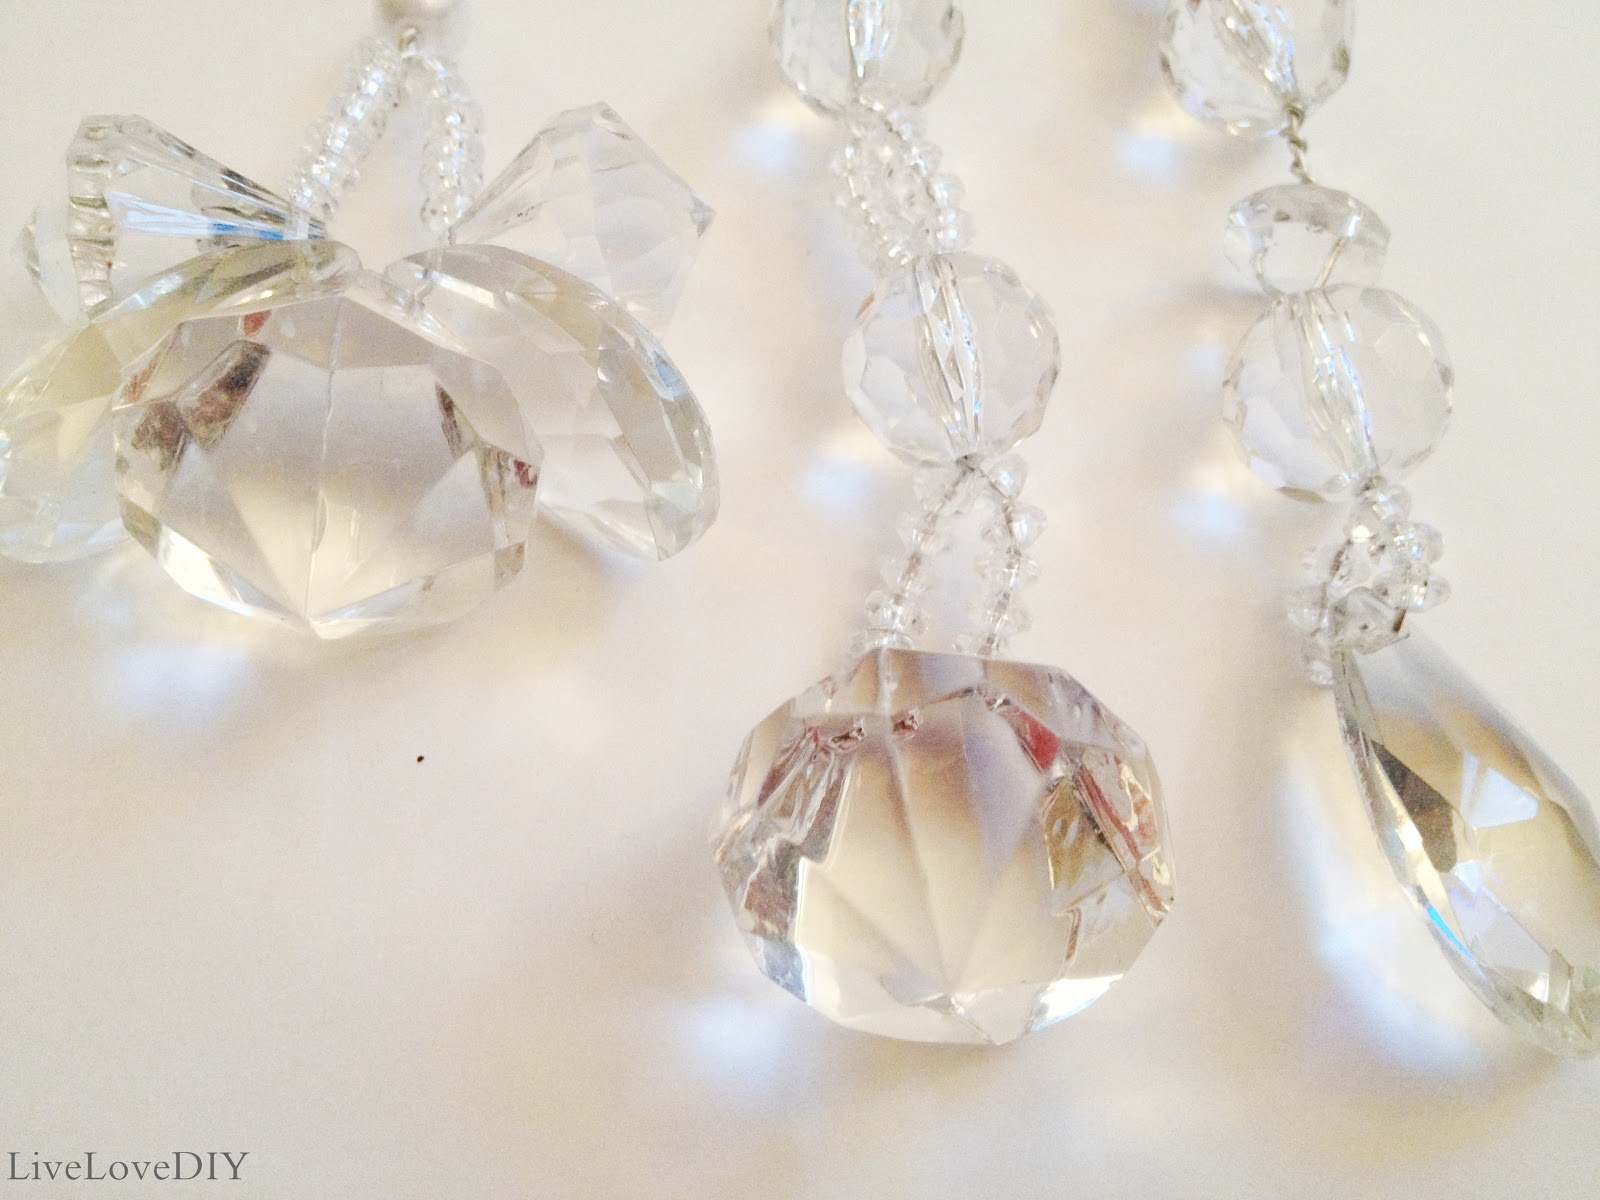 Crystal Christmas Ornaments.Livelovediy How To Make Your Own Christmas Ornaments Part 3